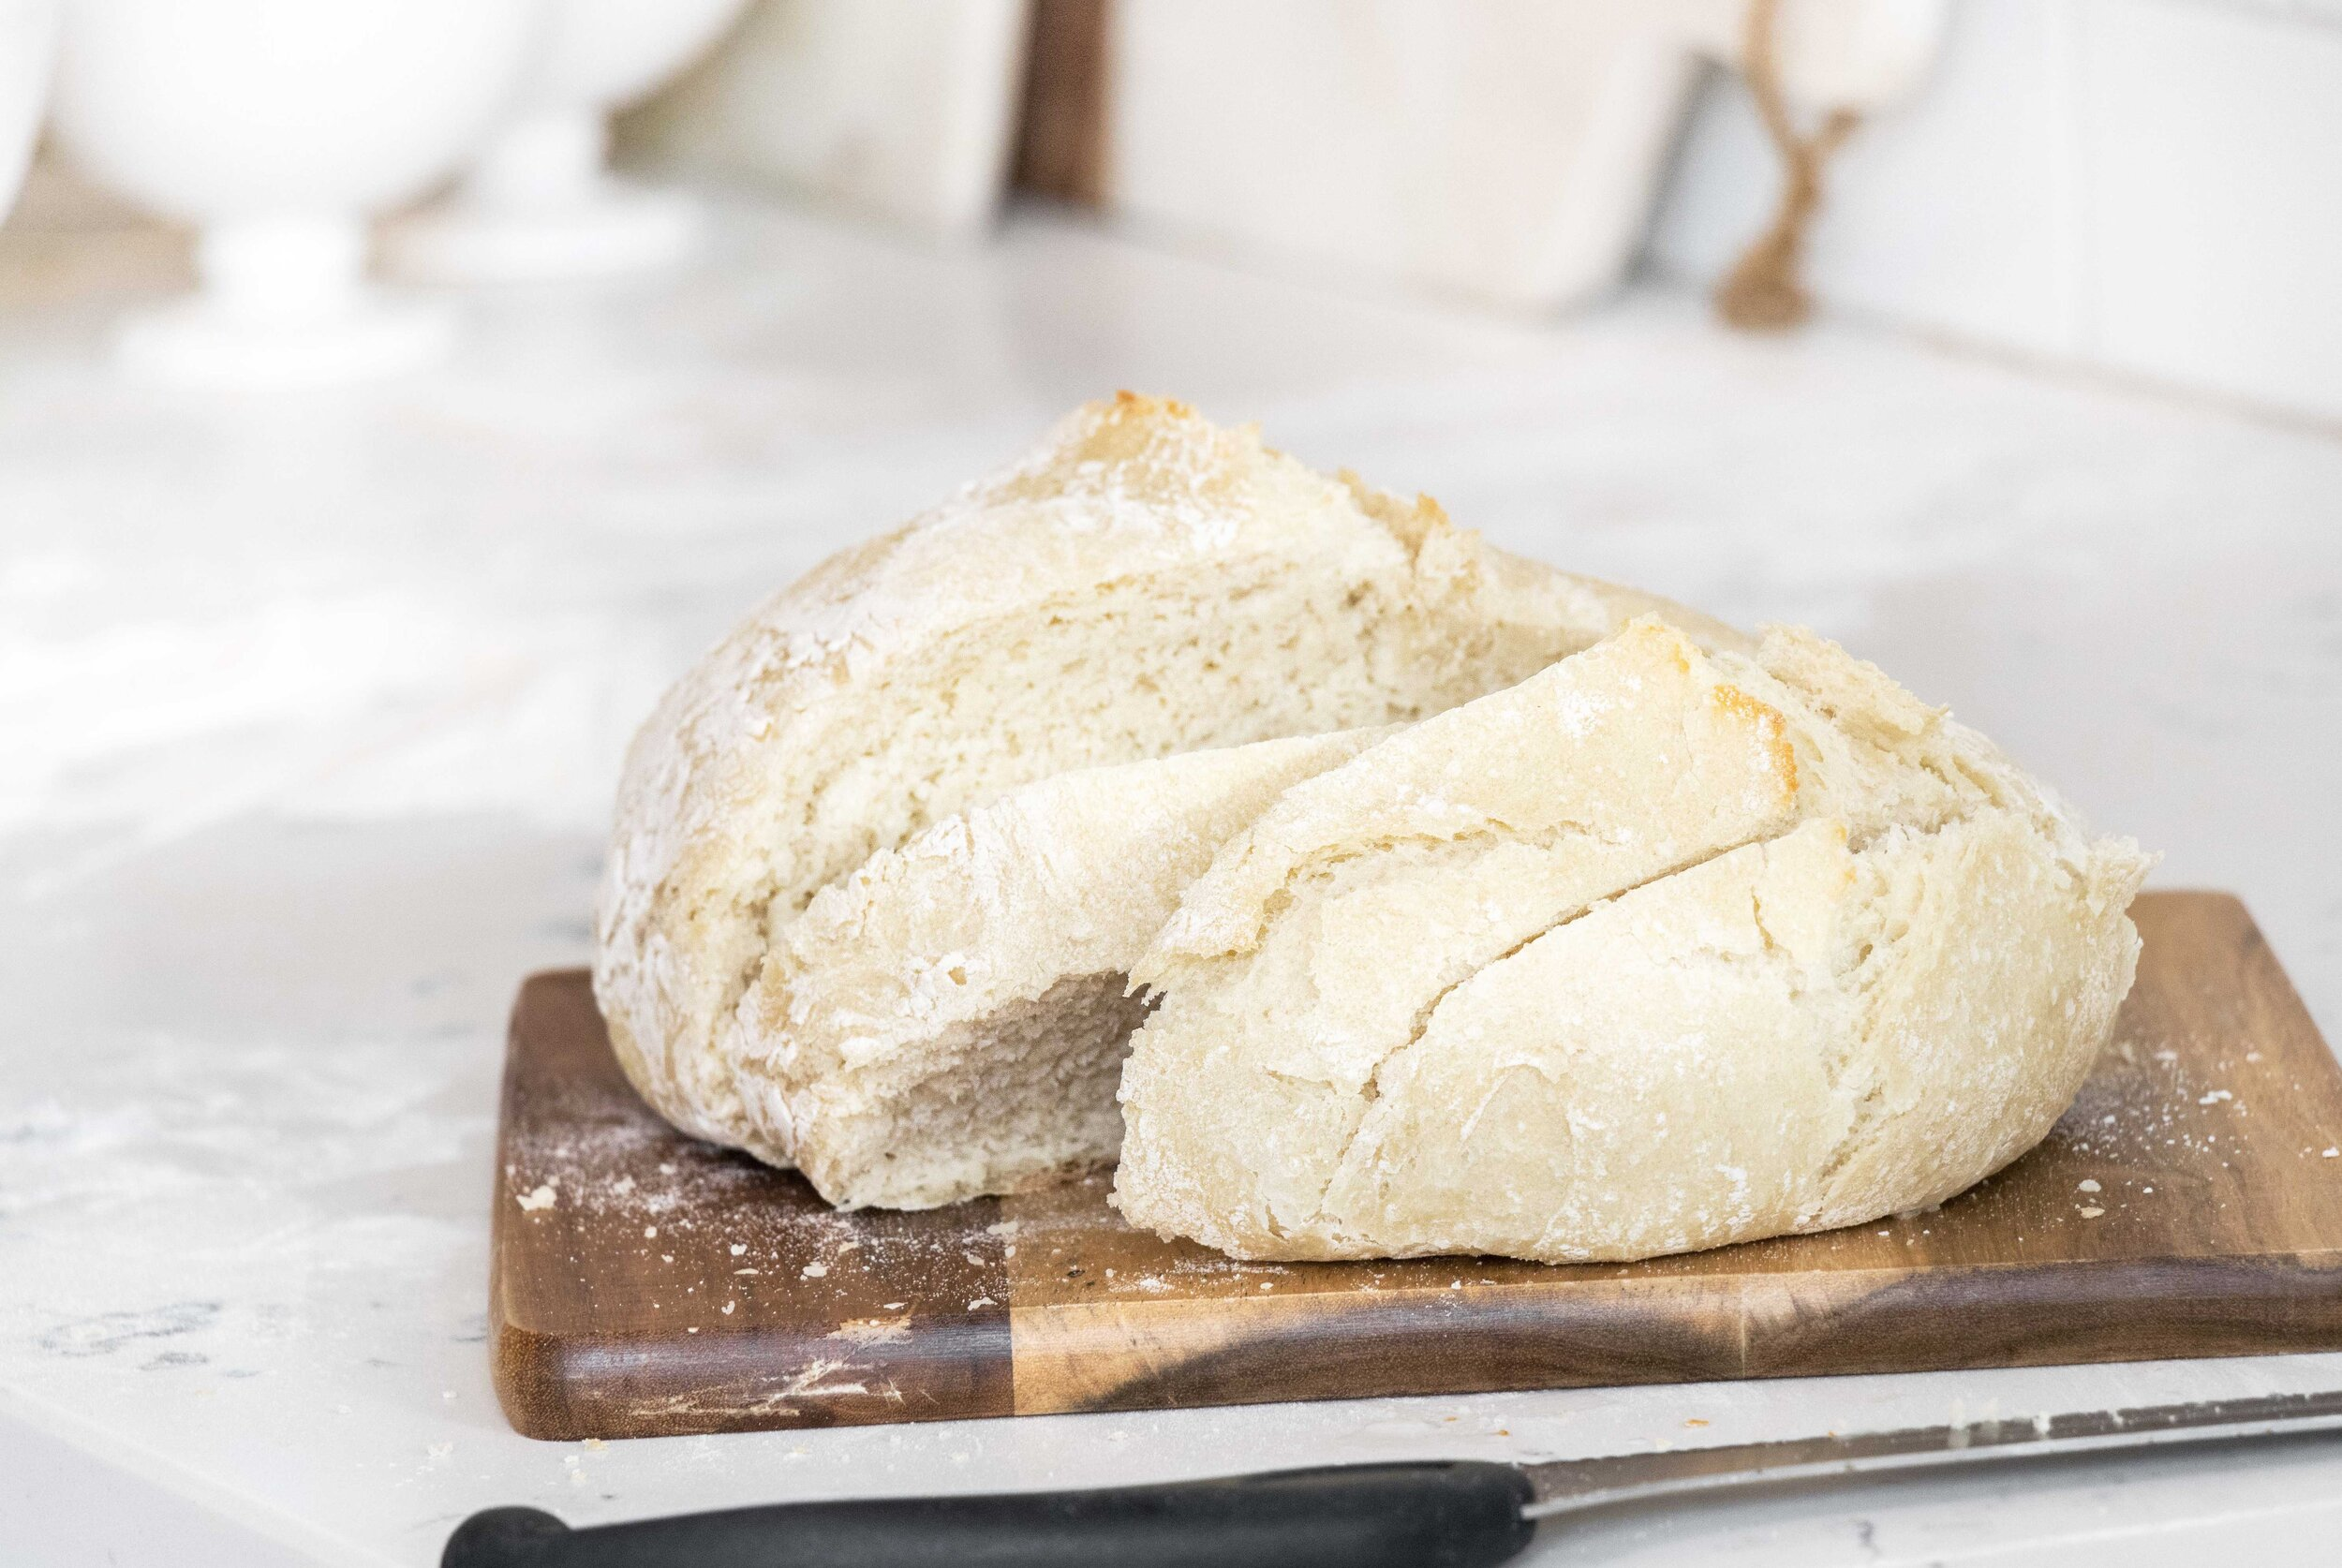 Homemade-Artisan-Bread-2.jpg